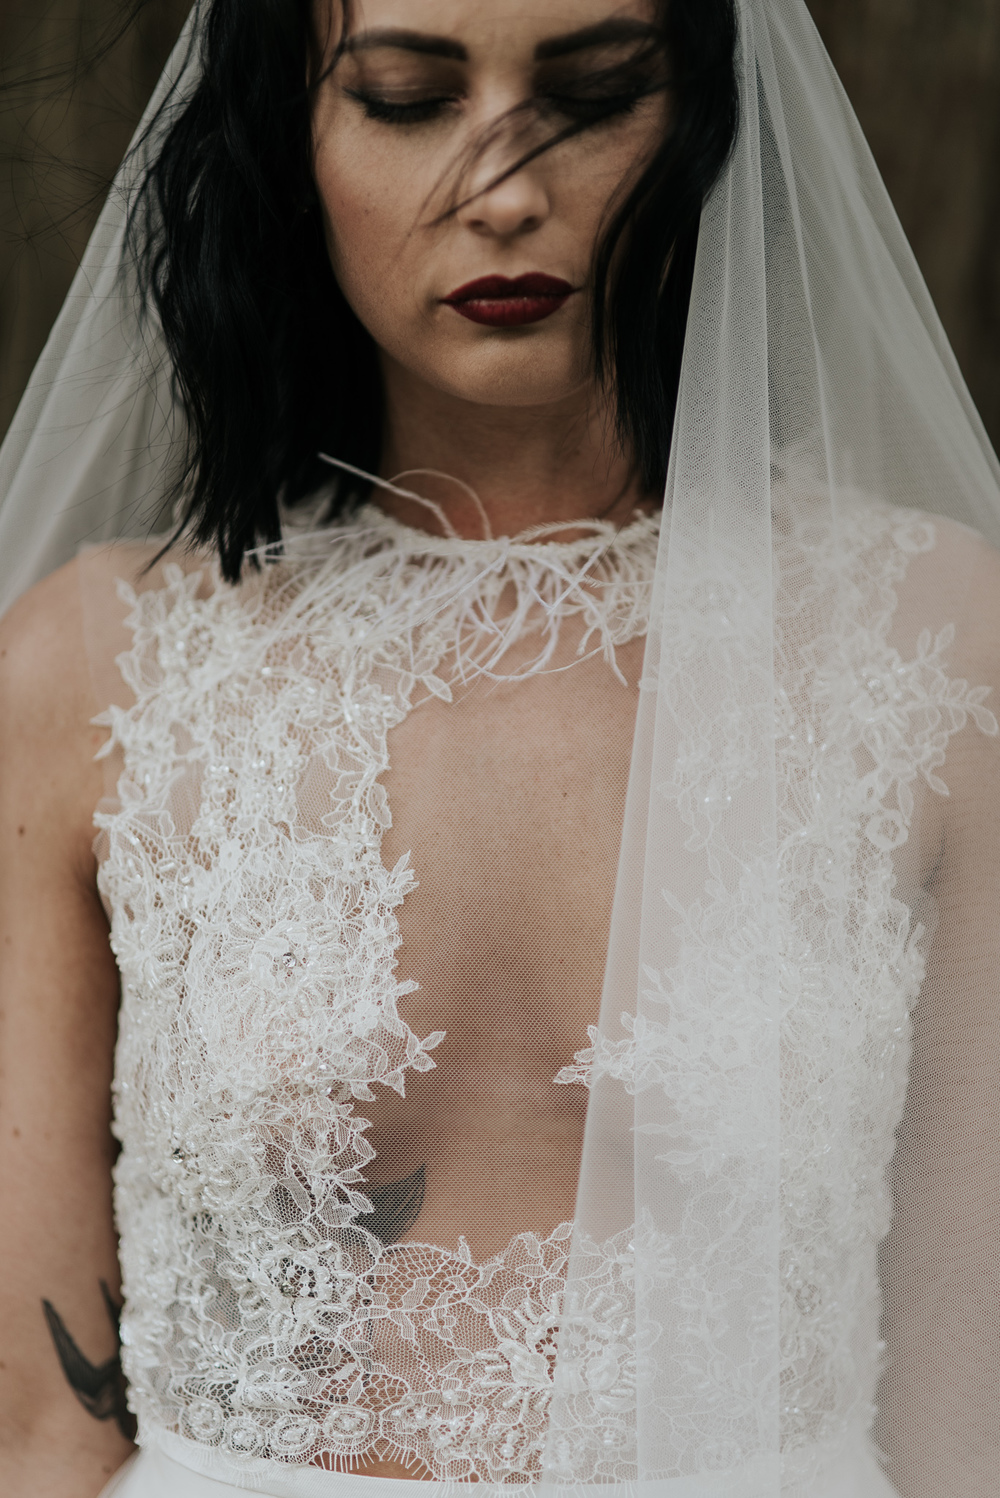 birmingham-wedding-photography-bridal-portraits-two-piece-dress-lace-tulle-sutton-coldfield-feather-neckline-veil